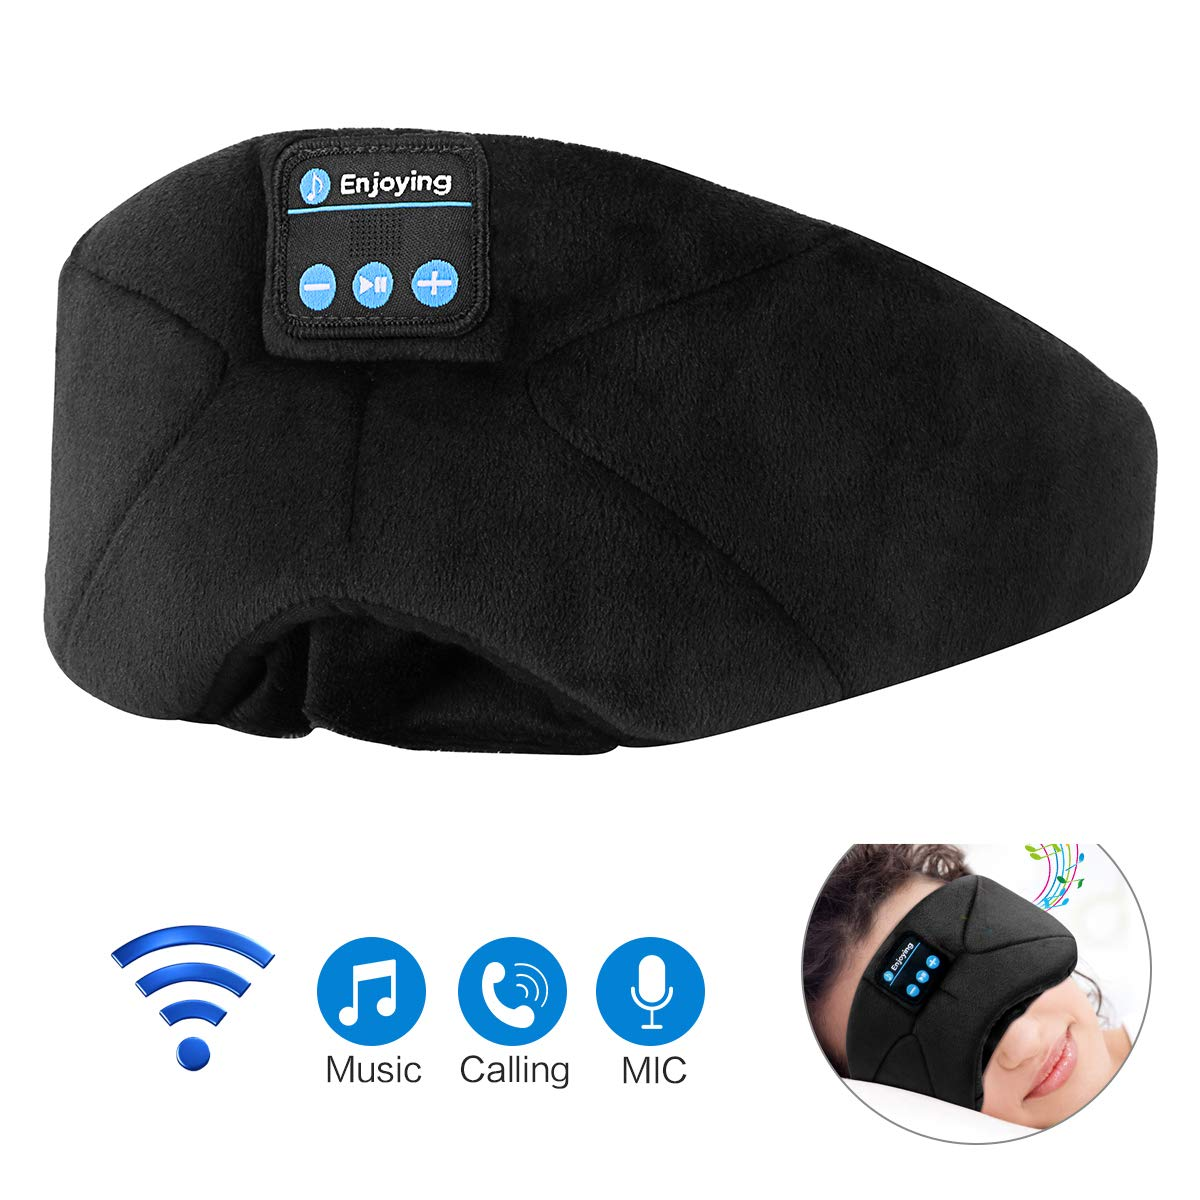 Bluetooth Earmuffs Headphones, Unisex Foldable Winter Ear Warmers Wireless Music Bluetooth Headsets Microphone Outdoor Sports, Travel, Black LC-dolida